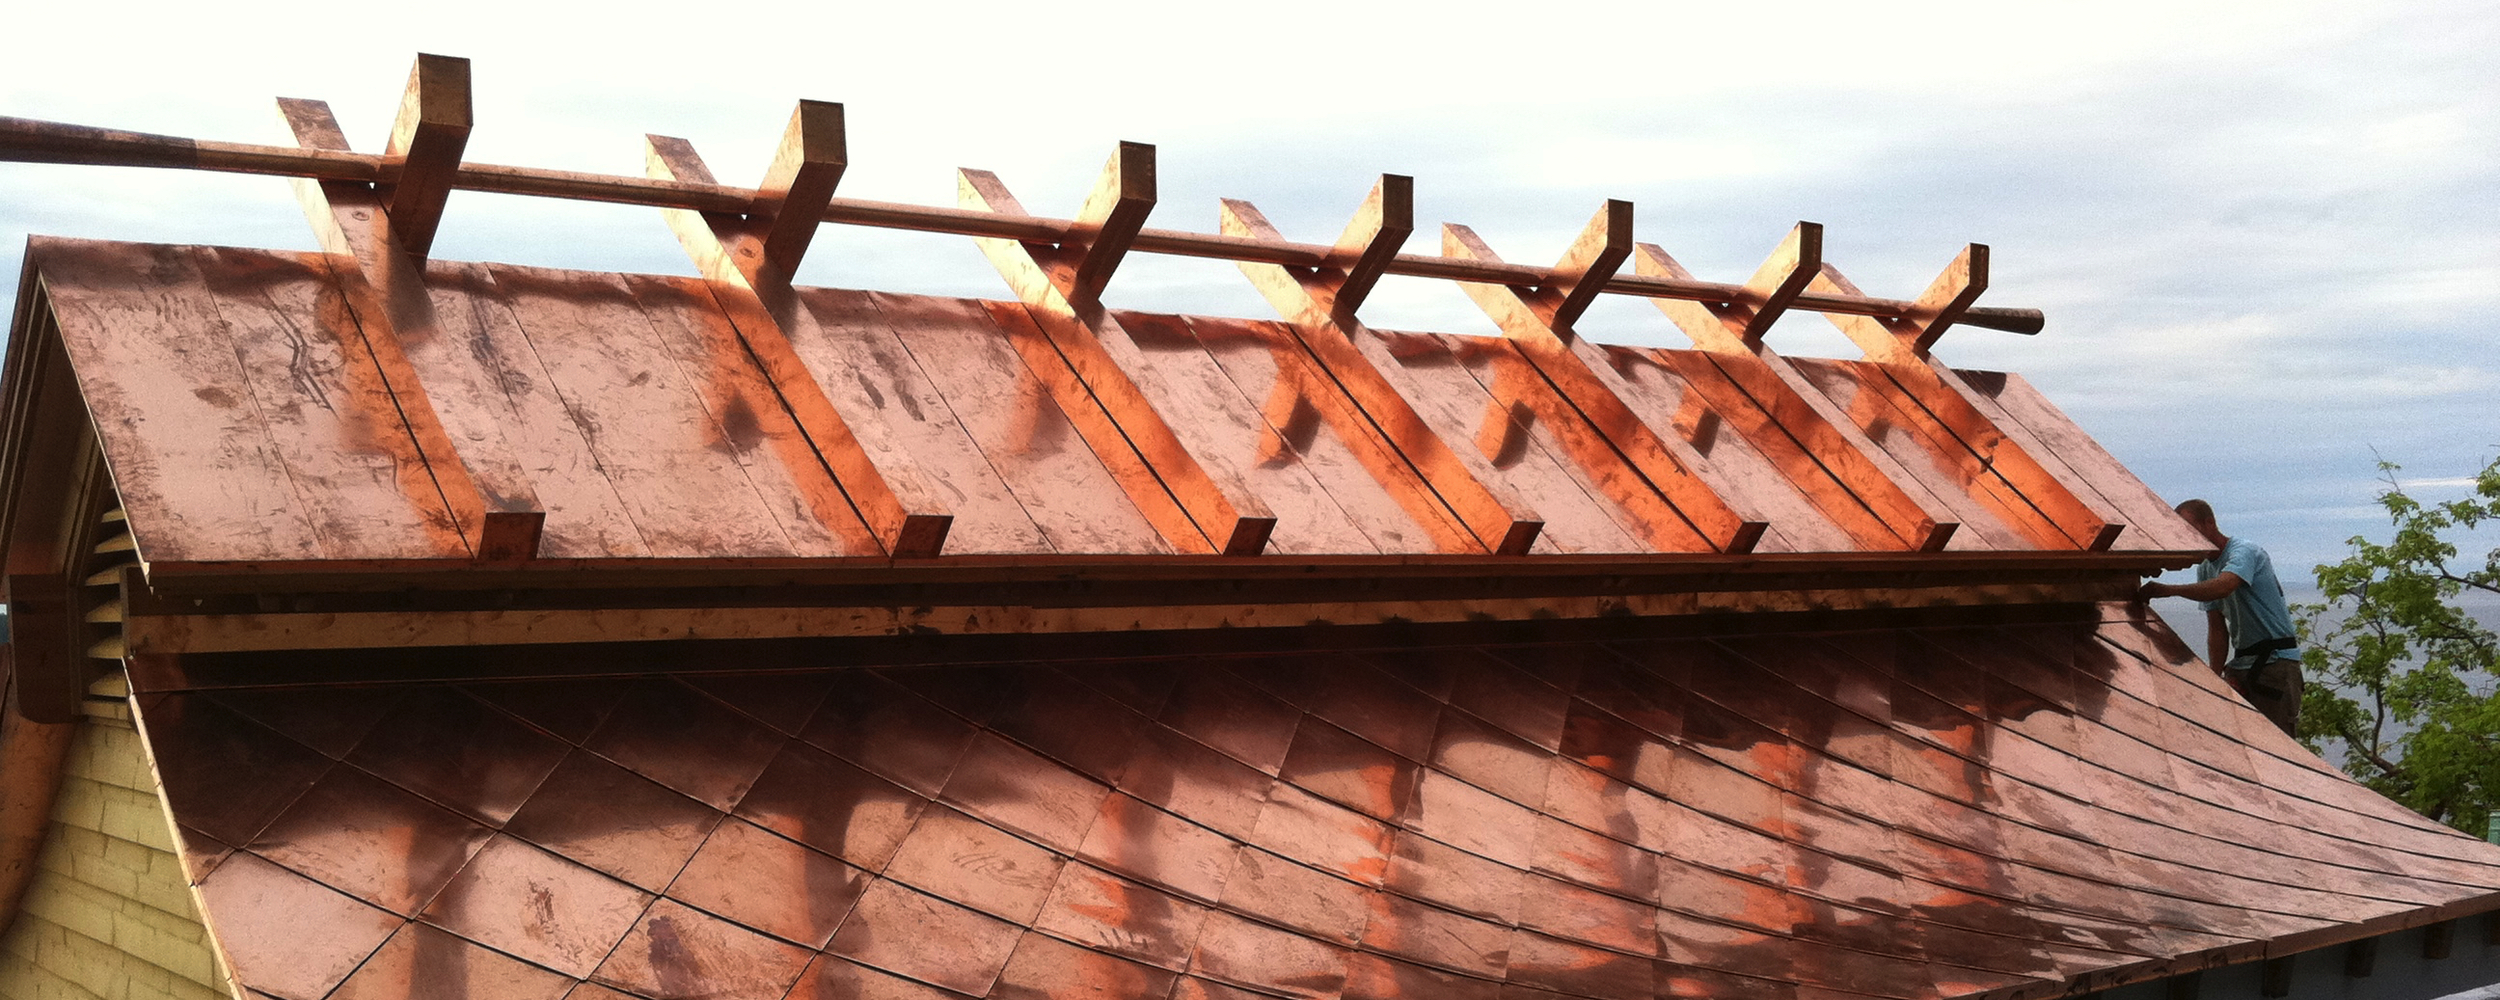 copper cornice on a custom roof by Huber & associates